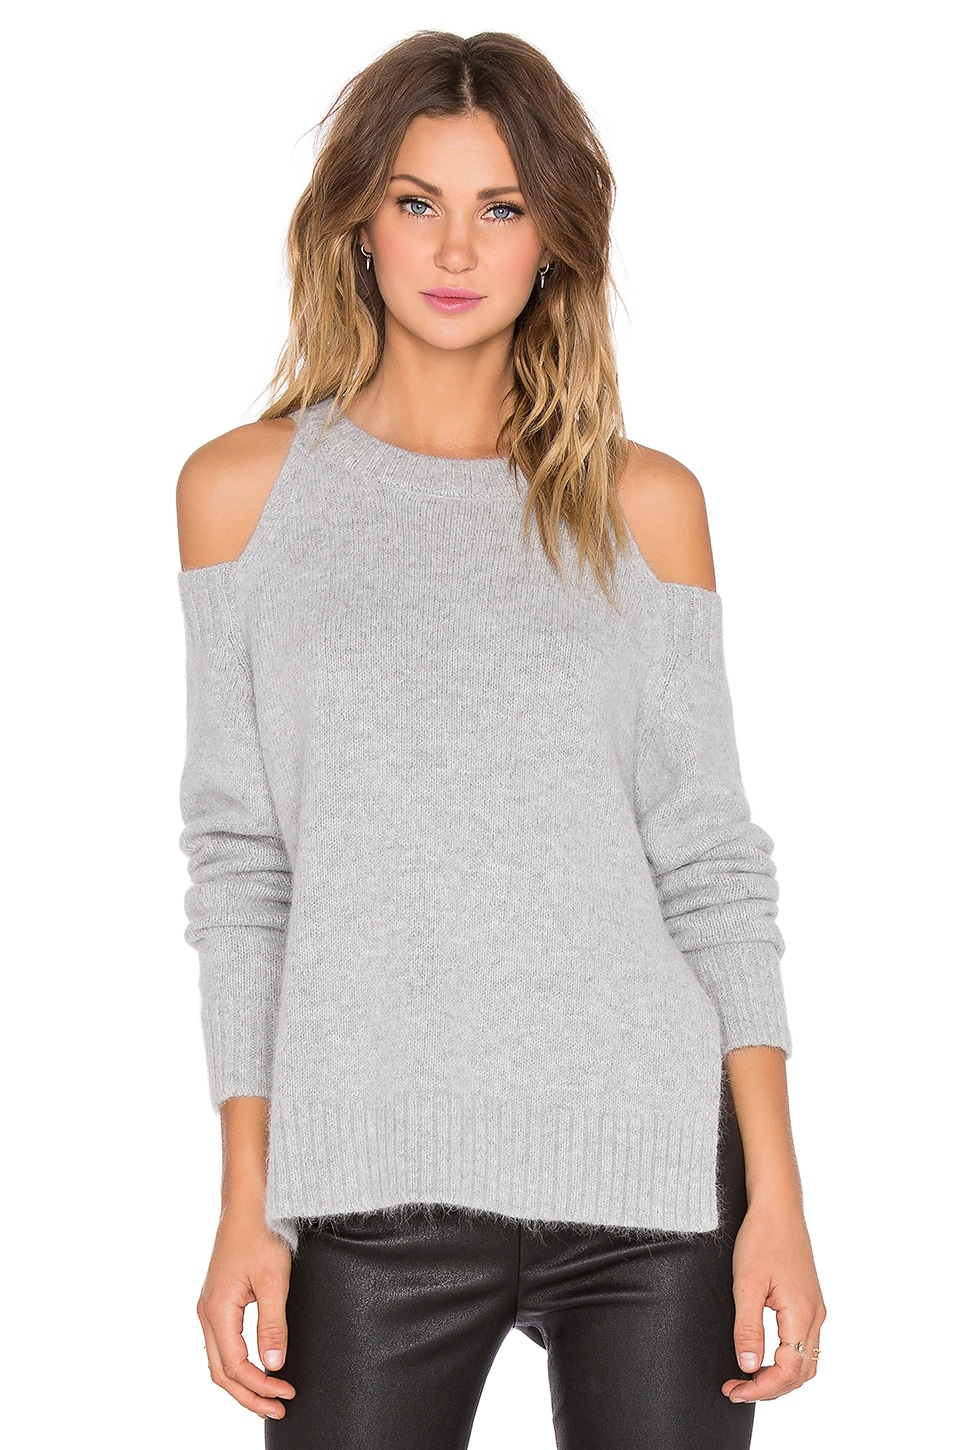 J.O.A. Shoulder Cut Out Sweater in Grey | REVOLVE